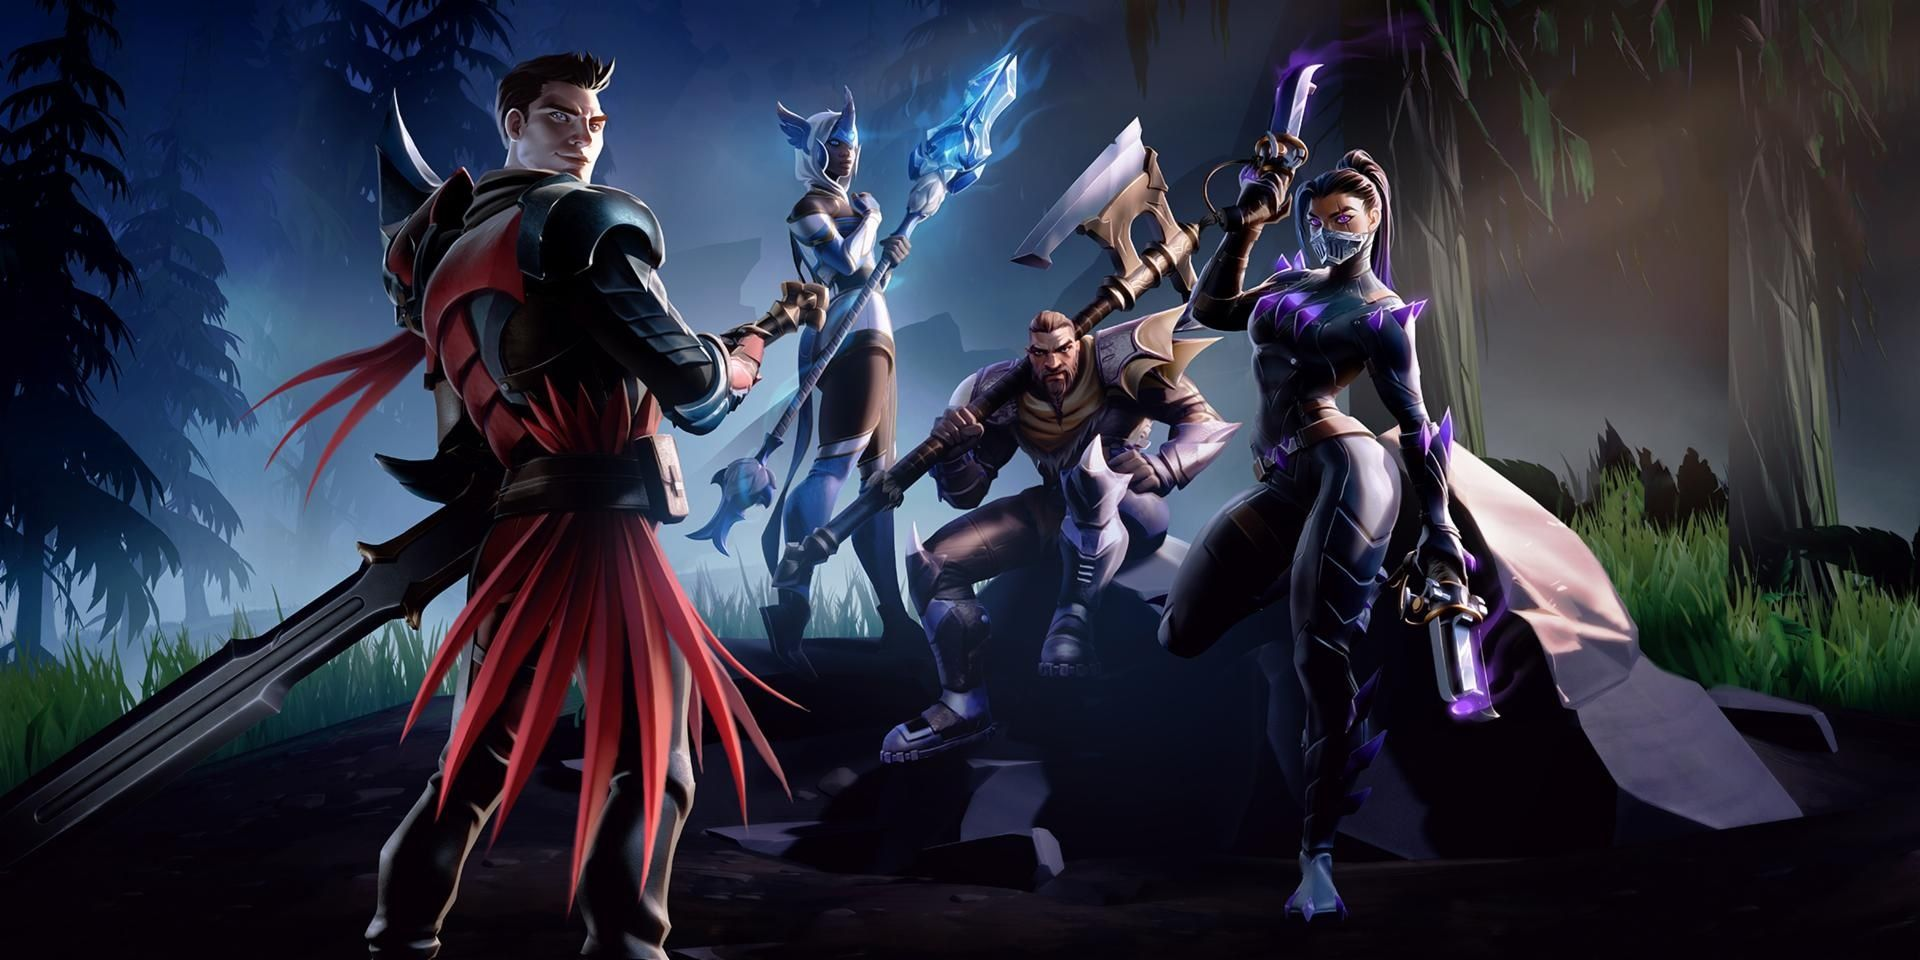 Dauntless launches today on Xbox One, PS4, and PC, the